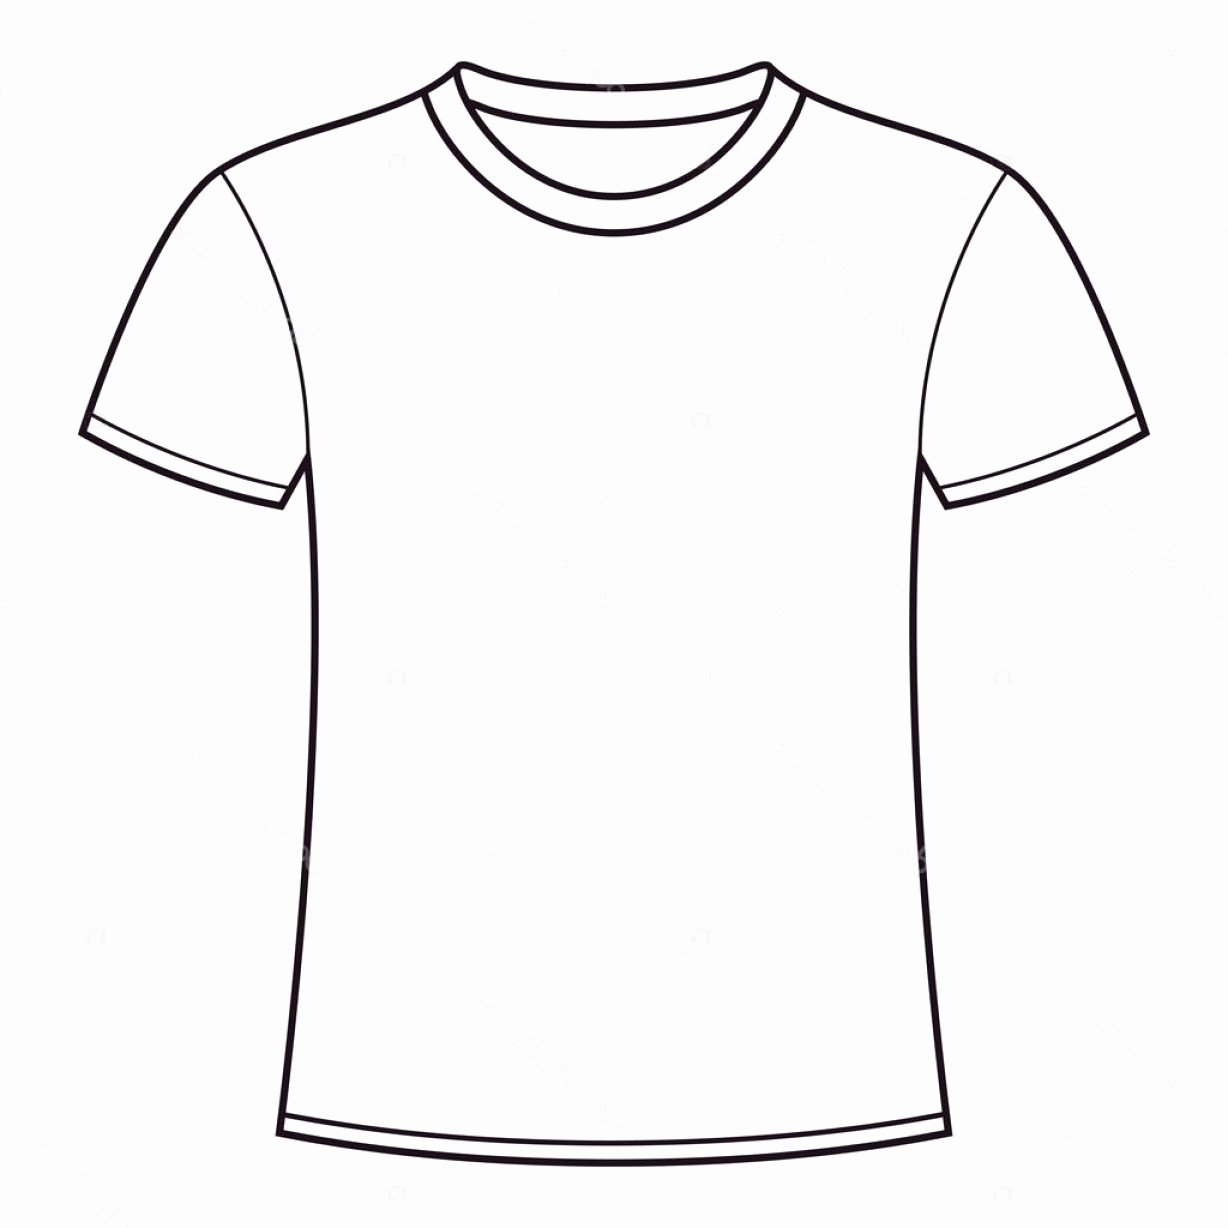 Blank Tshirt Template Unique Stock Illustration Blank T Shirt Template